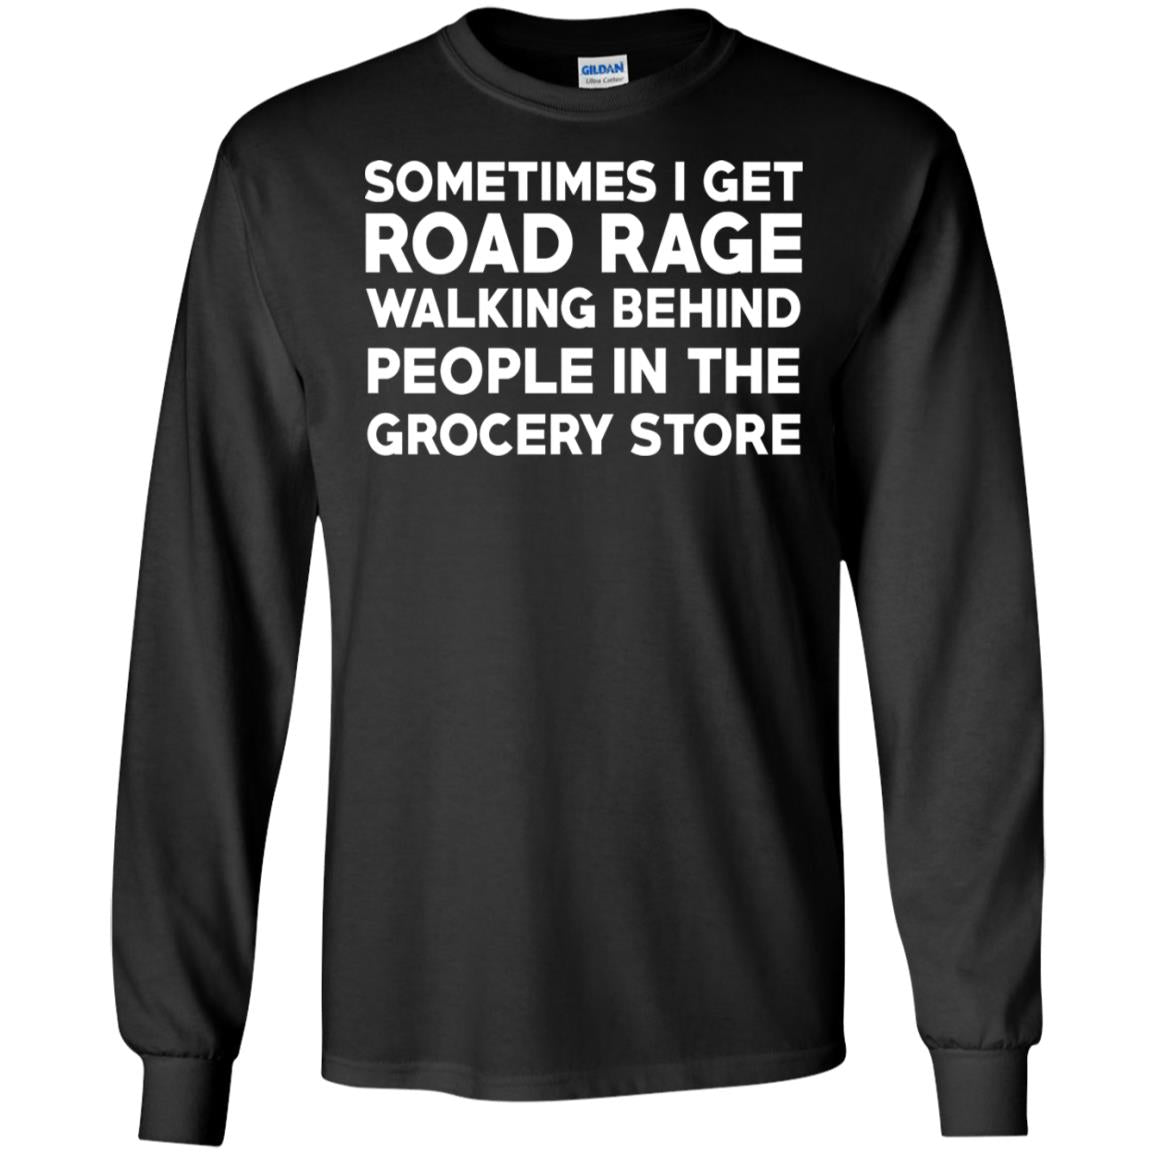 Sometimes I get road rage walking behind people in the grocery store